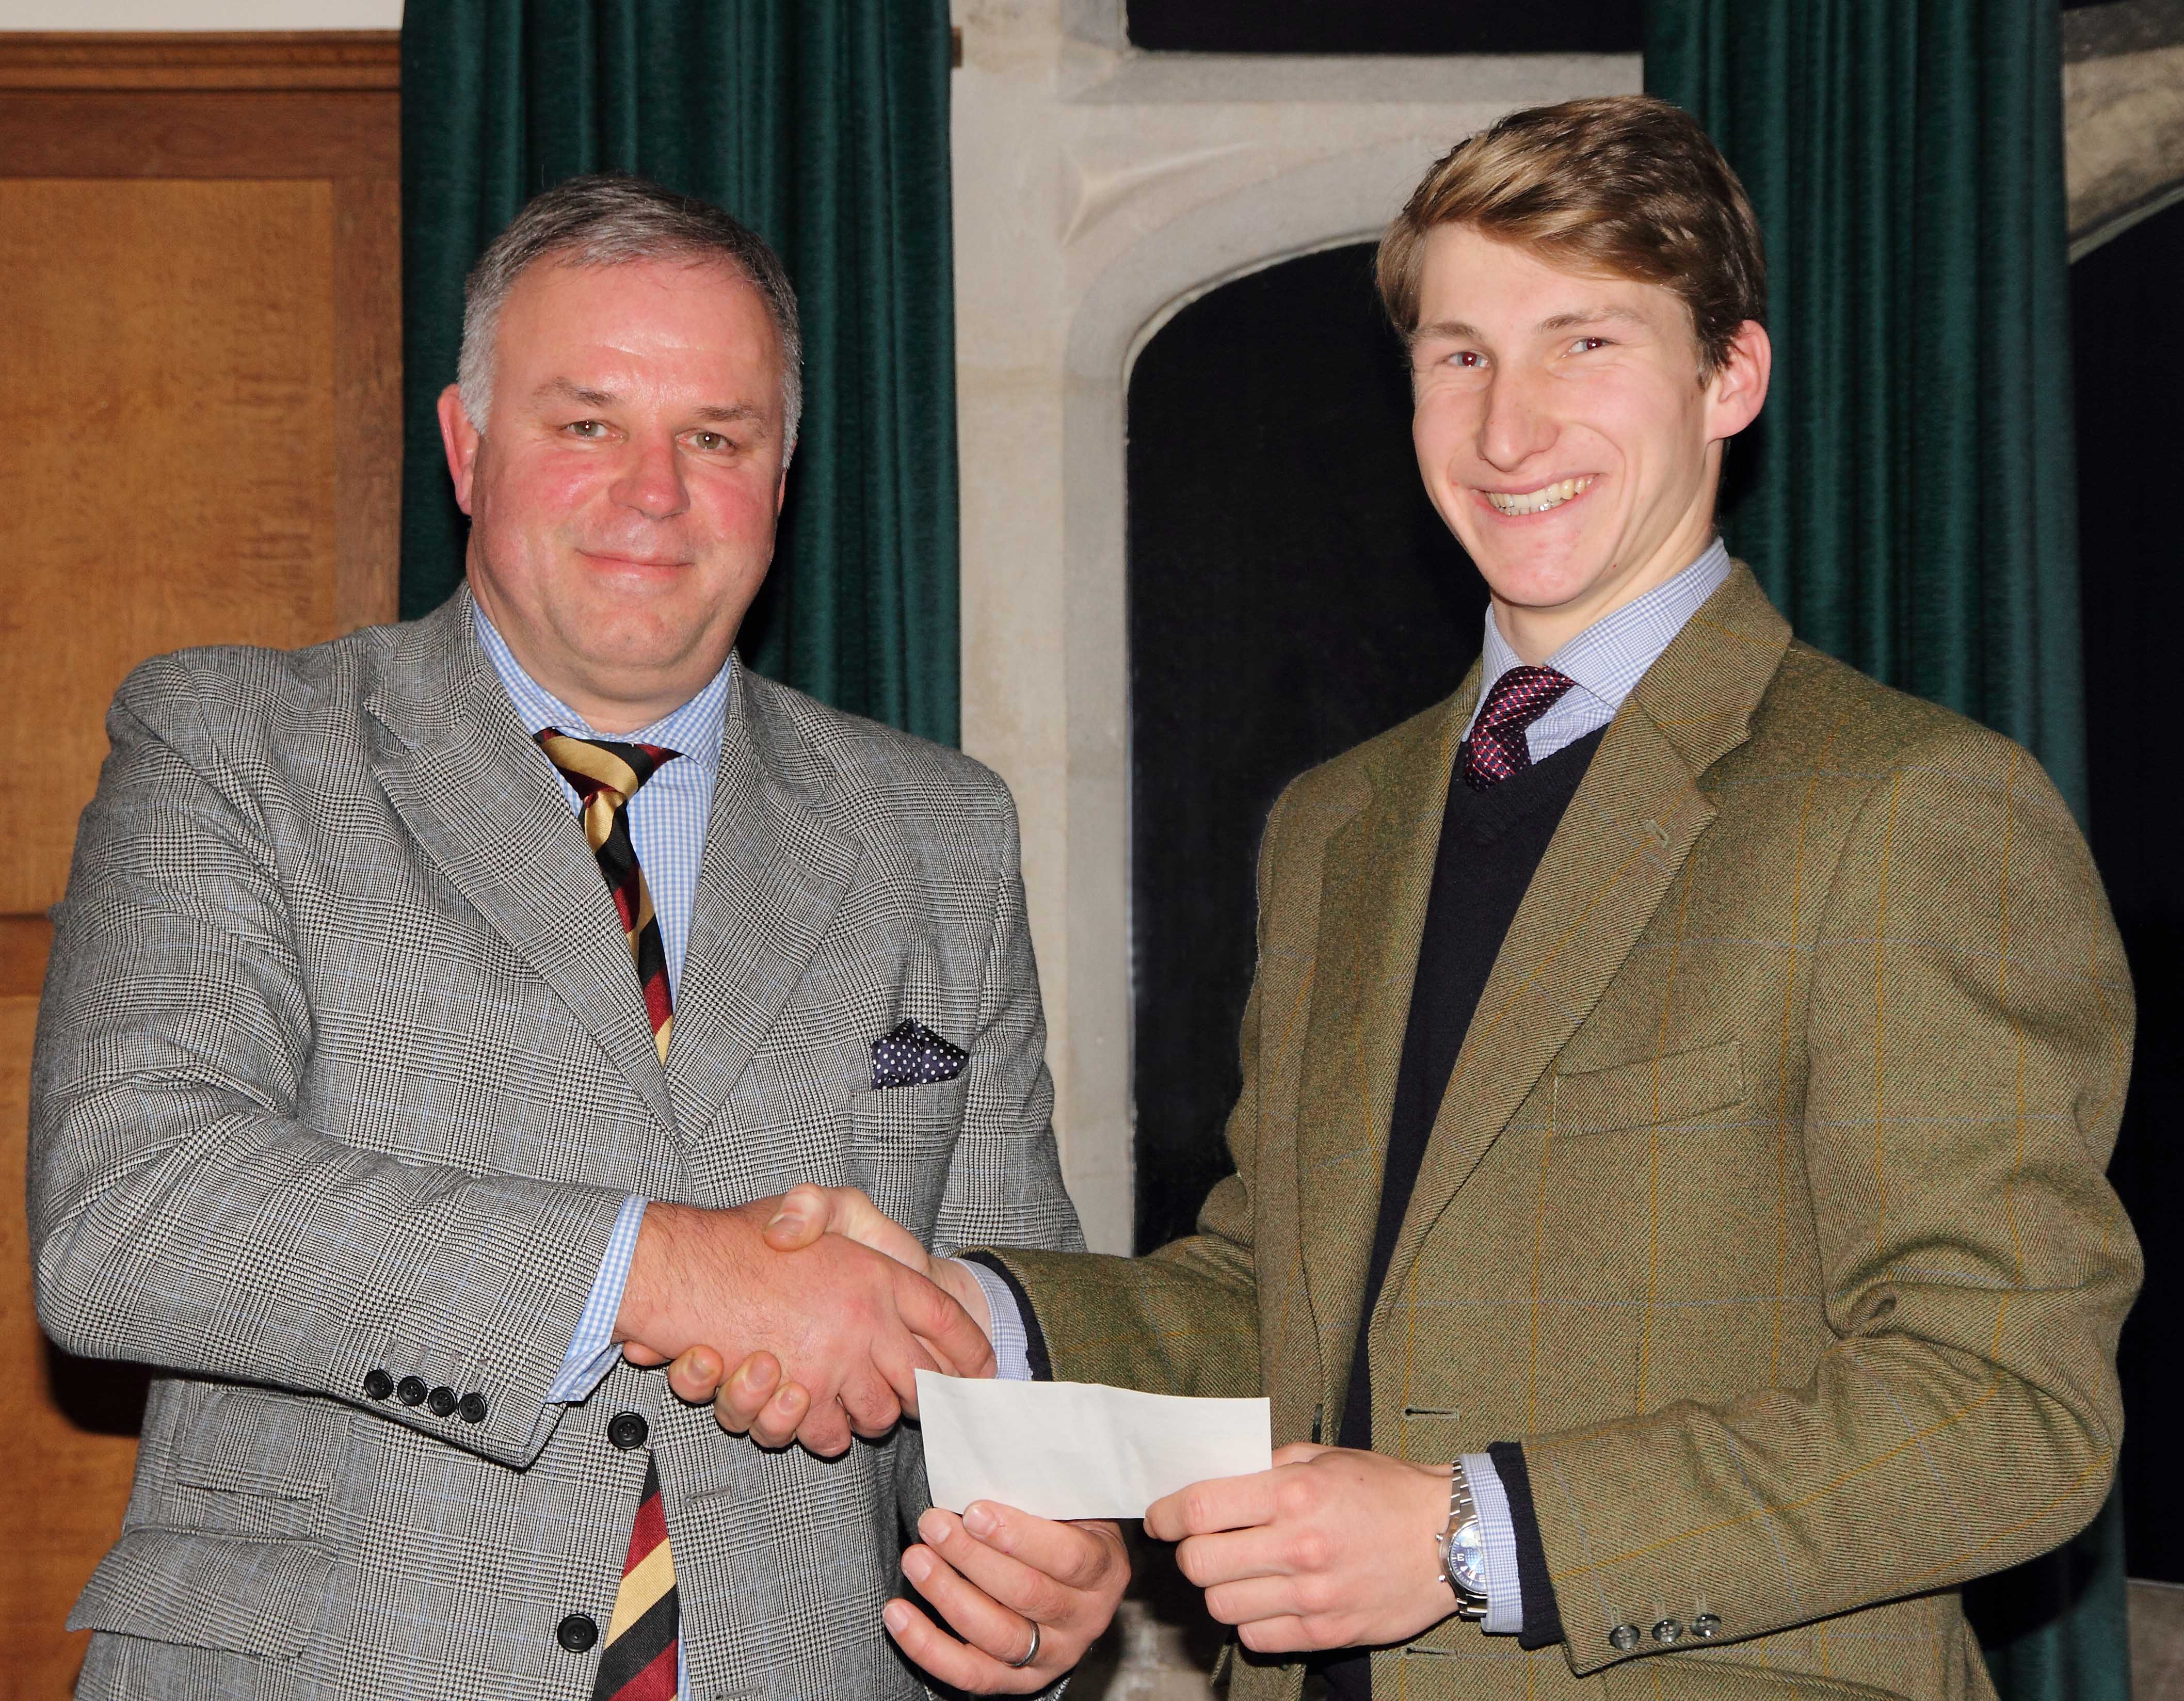 Andrew Jackson, managing partner at Fisher German, presents Tom Vacher with his cheque as part of the Henry Sale Graduate Bursary